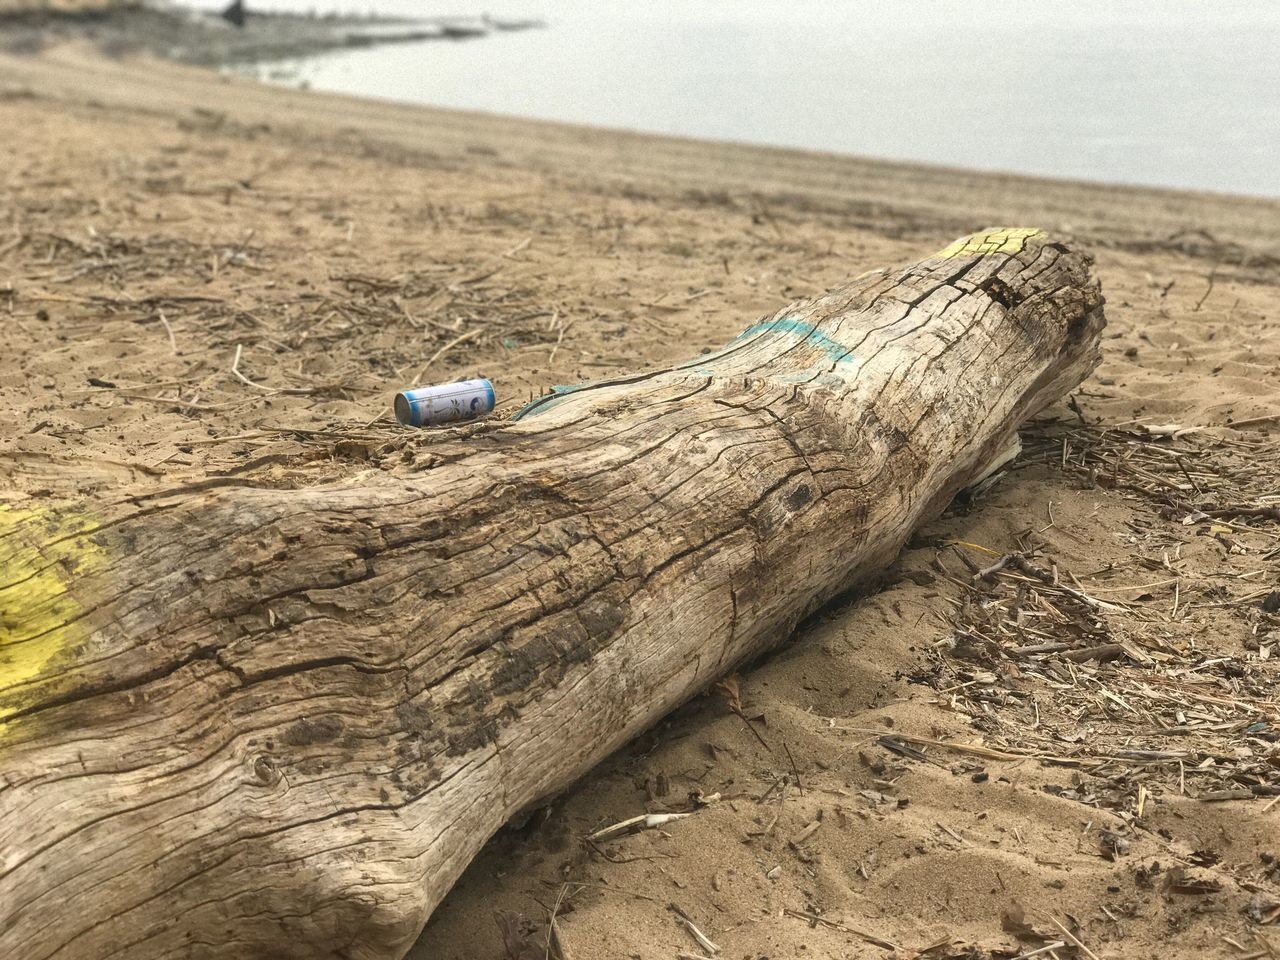 Sand Beach Wood - Material Day Water Damaged Tranquility Focus On Foreground Outdoors No People Nature Close-up